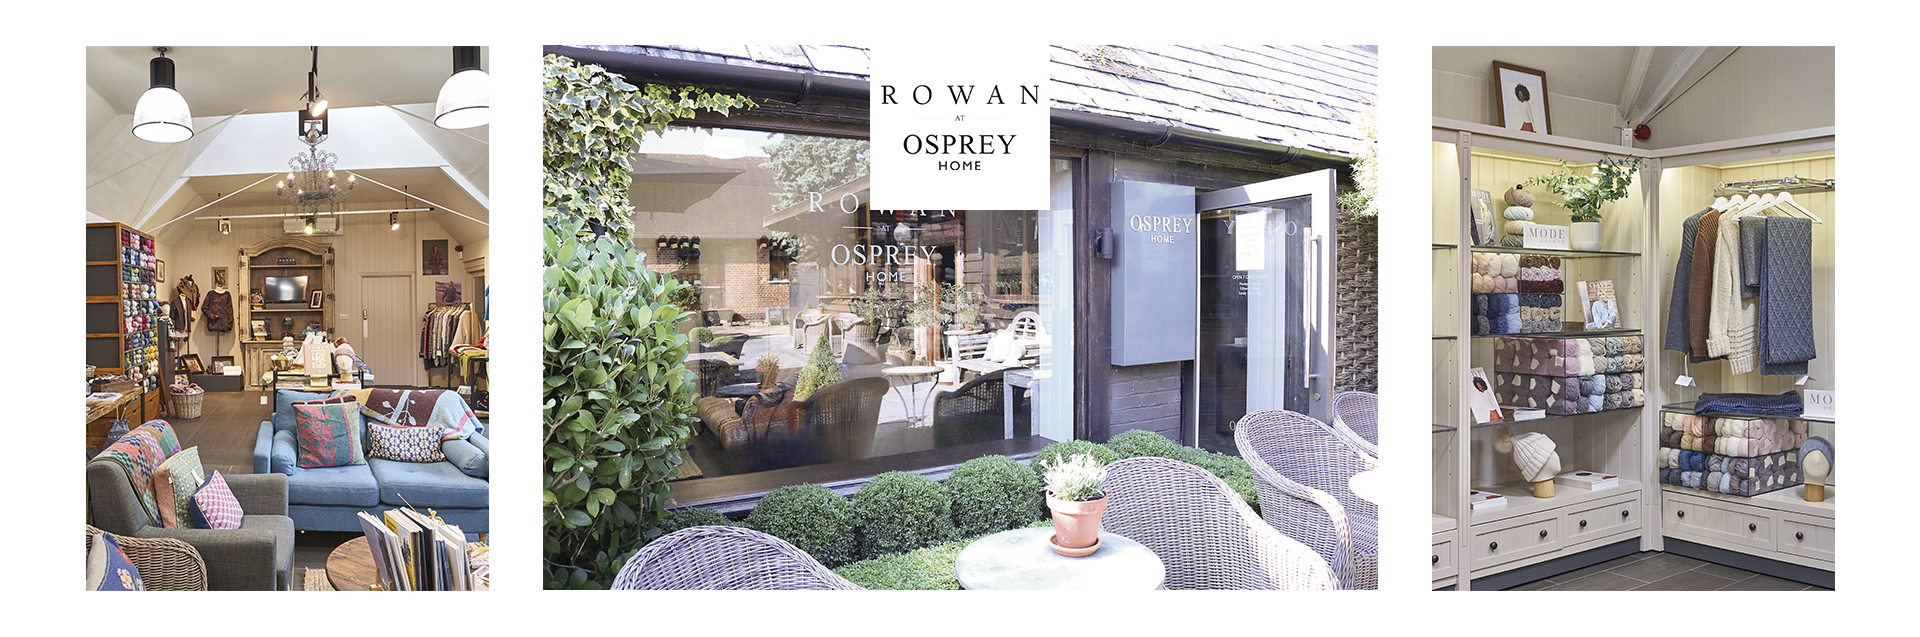 Rowan at OSPREY HOME became the brand's Global Flagship Store in September 2019 after 30 years in Liberty London. Located just outside St. Albans in Hertfordshire, with its stores and café built in a pretty courtyard setting, the picturesque OSPREY HOME rural location is the perfect place to see the full range of rowan yarns and inspirational displays